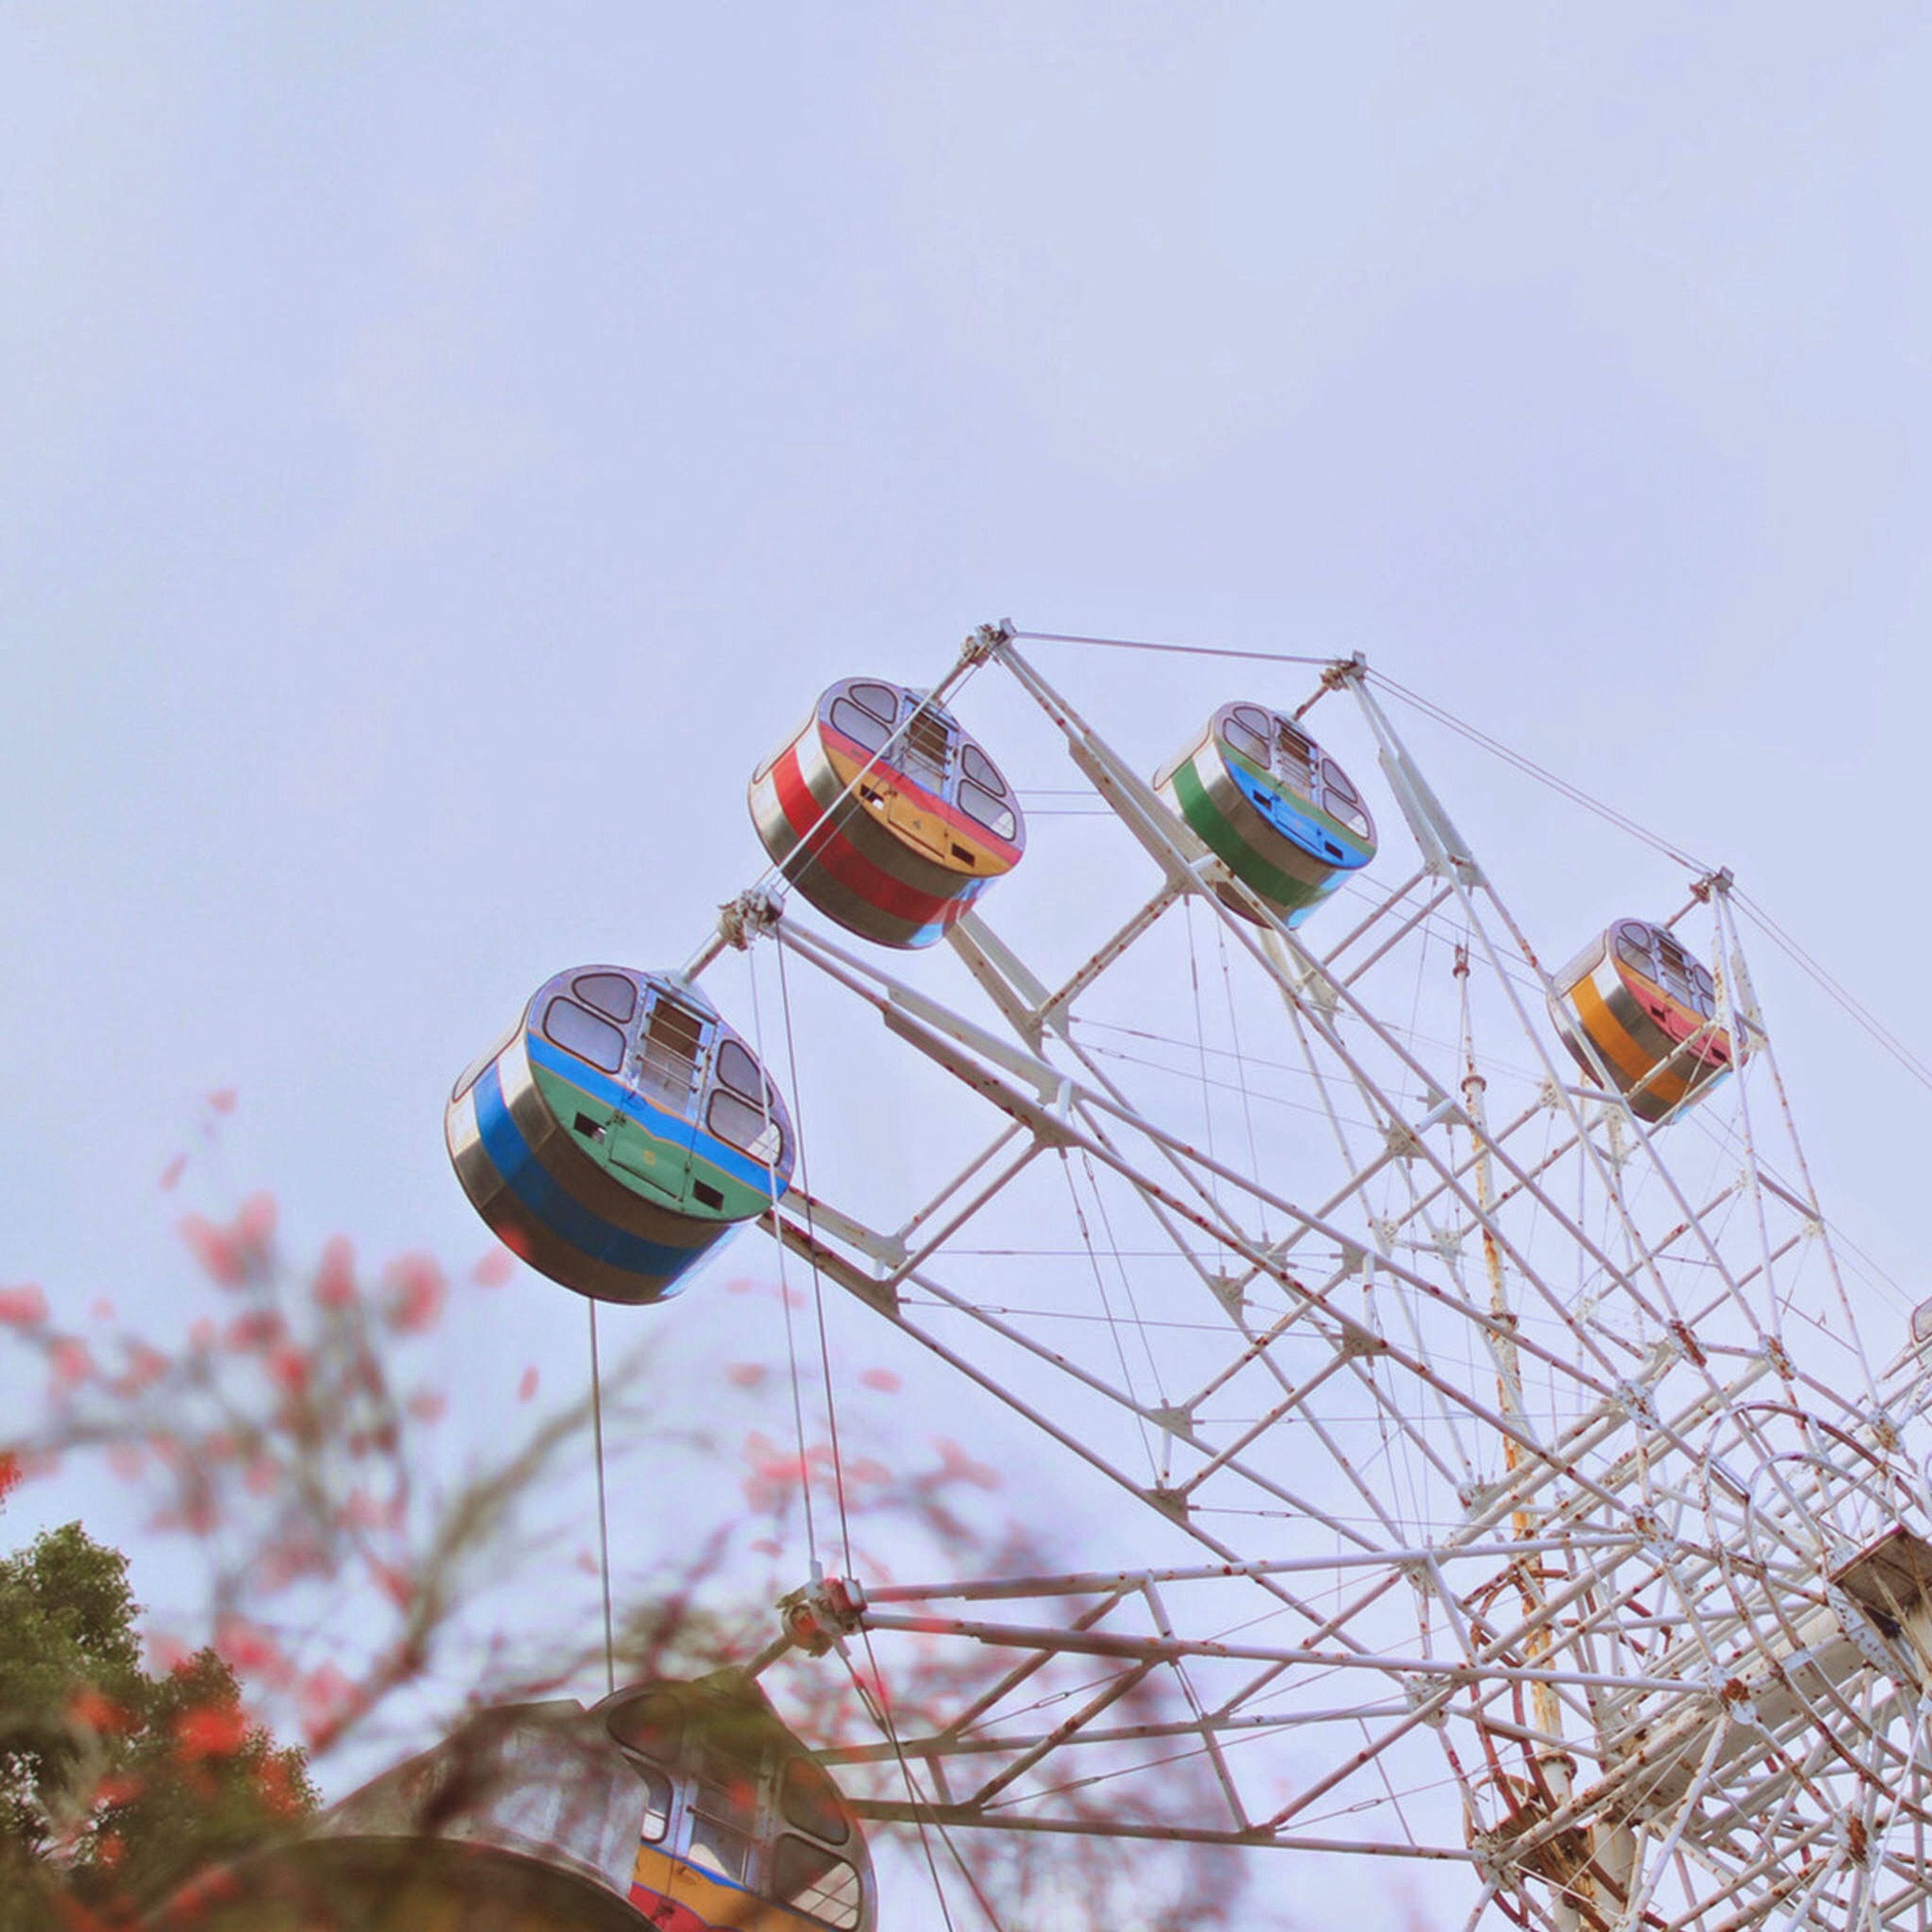 low angle view, clear sky, amusement park, amusement park ride, sky, day, arts culture and entertainment, outdoors, ferris wheel, no people, blue, transportation, hanging, tree, nature, copy space, multi colored, mode of transport, close-up, fun